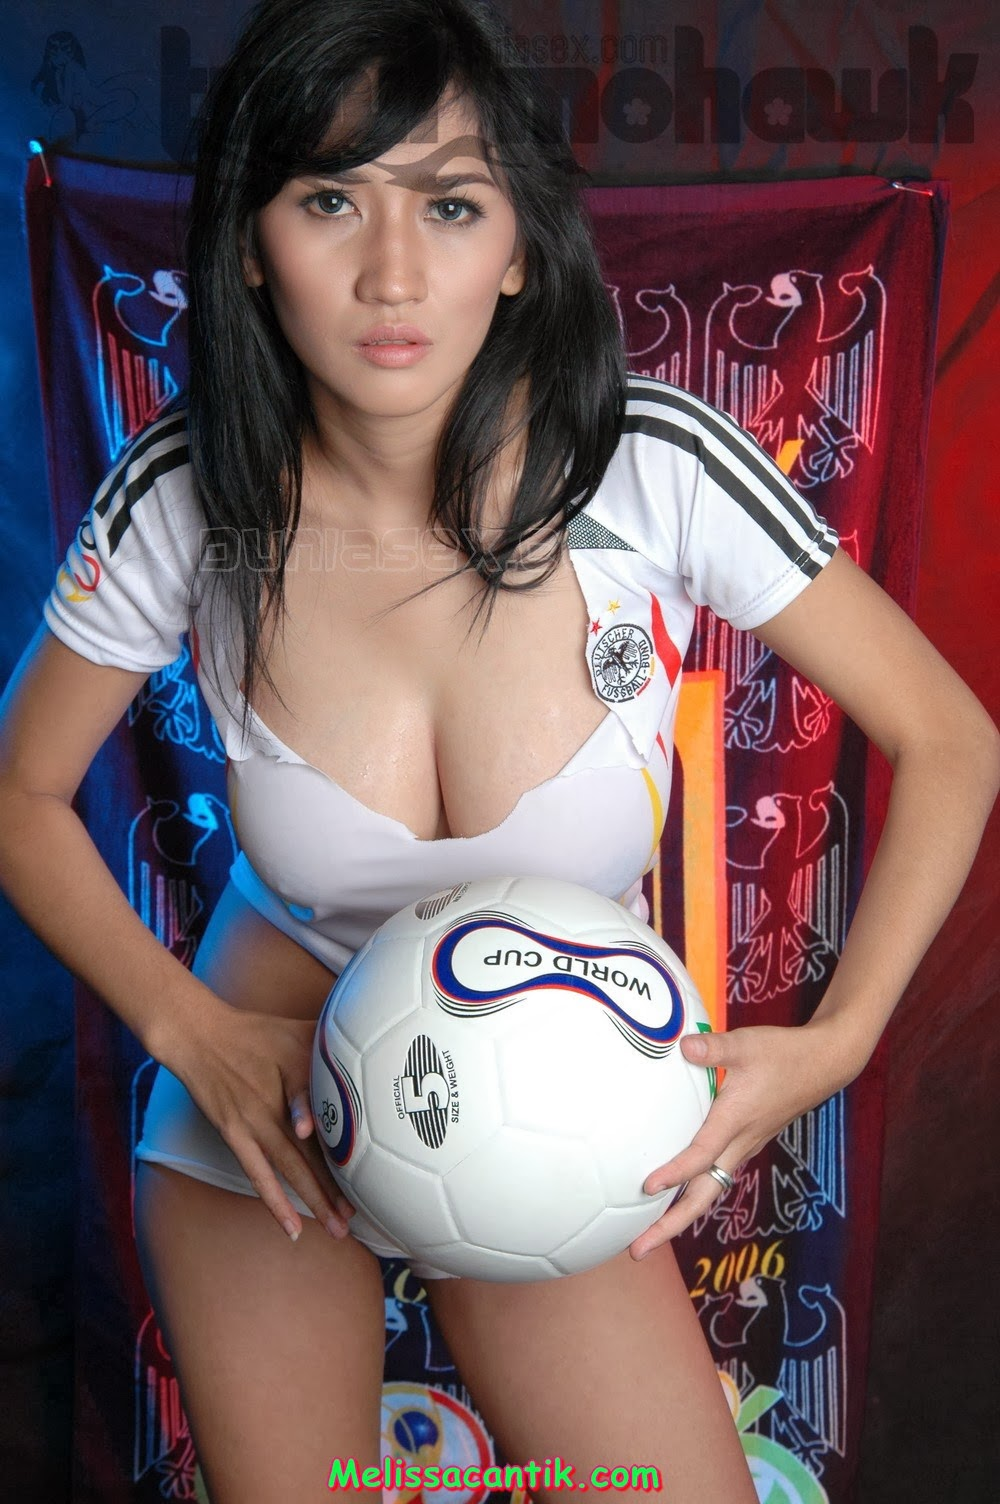 Image Result For Bokep Online Terbaru Indonesia